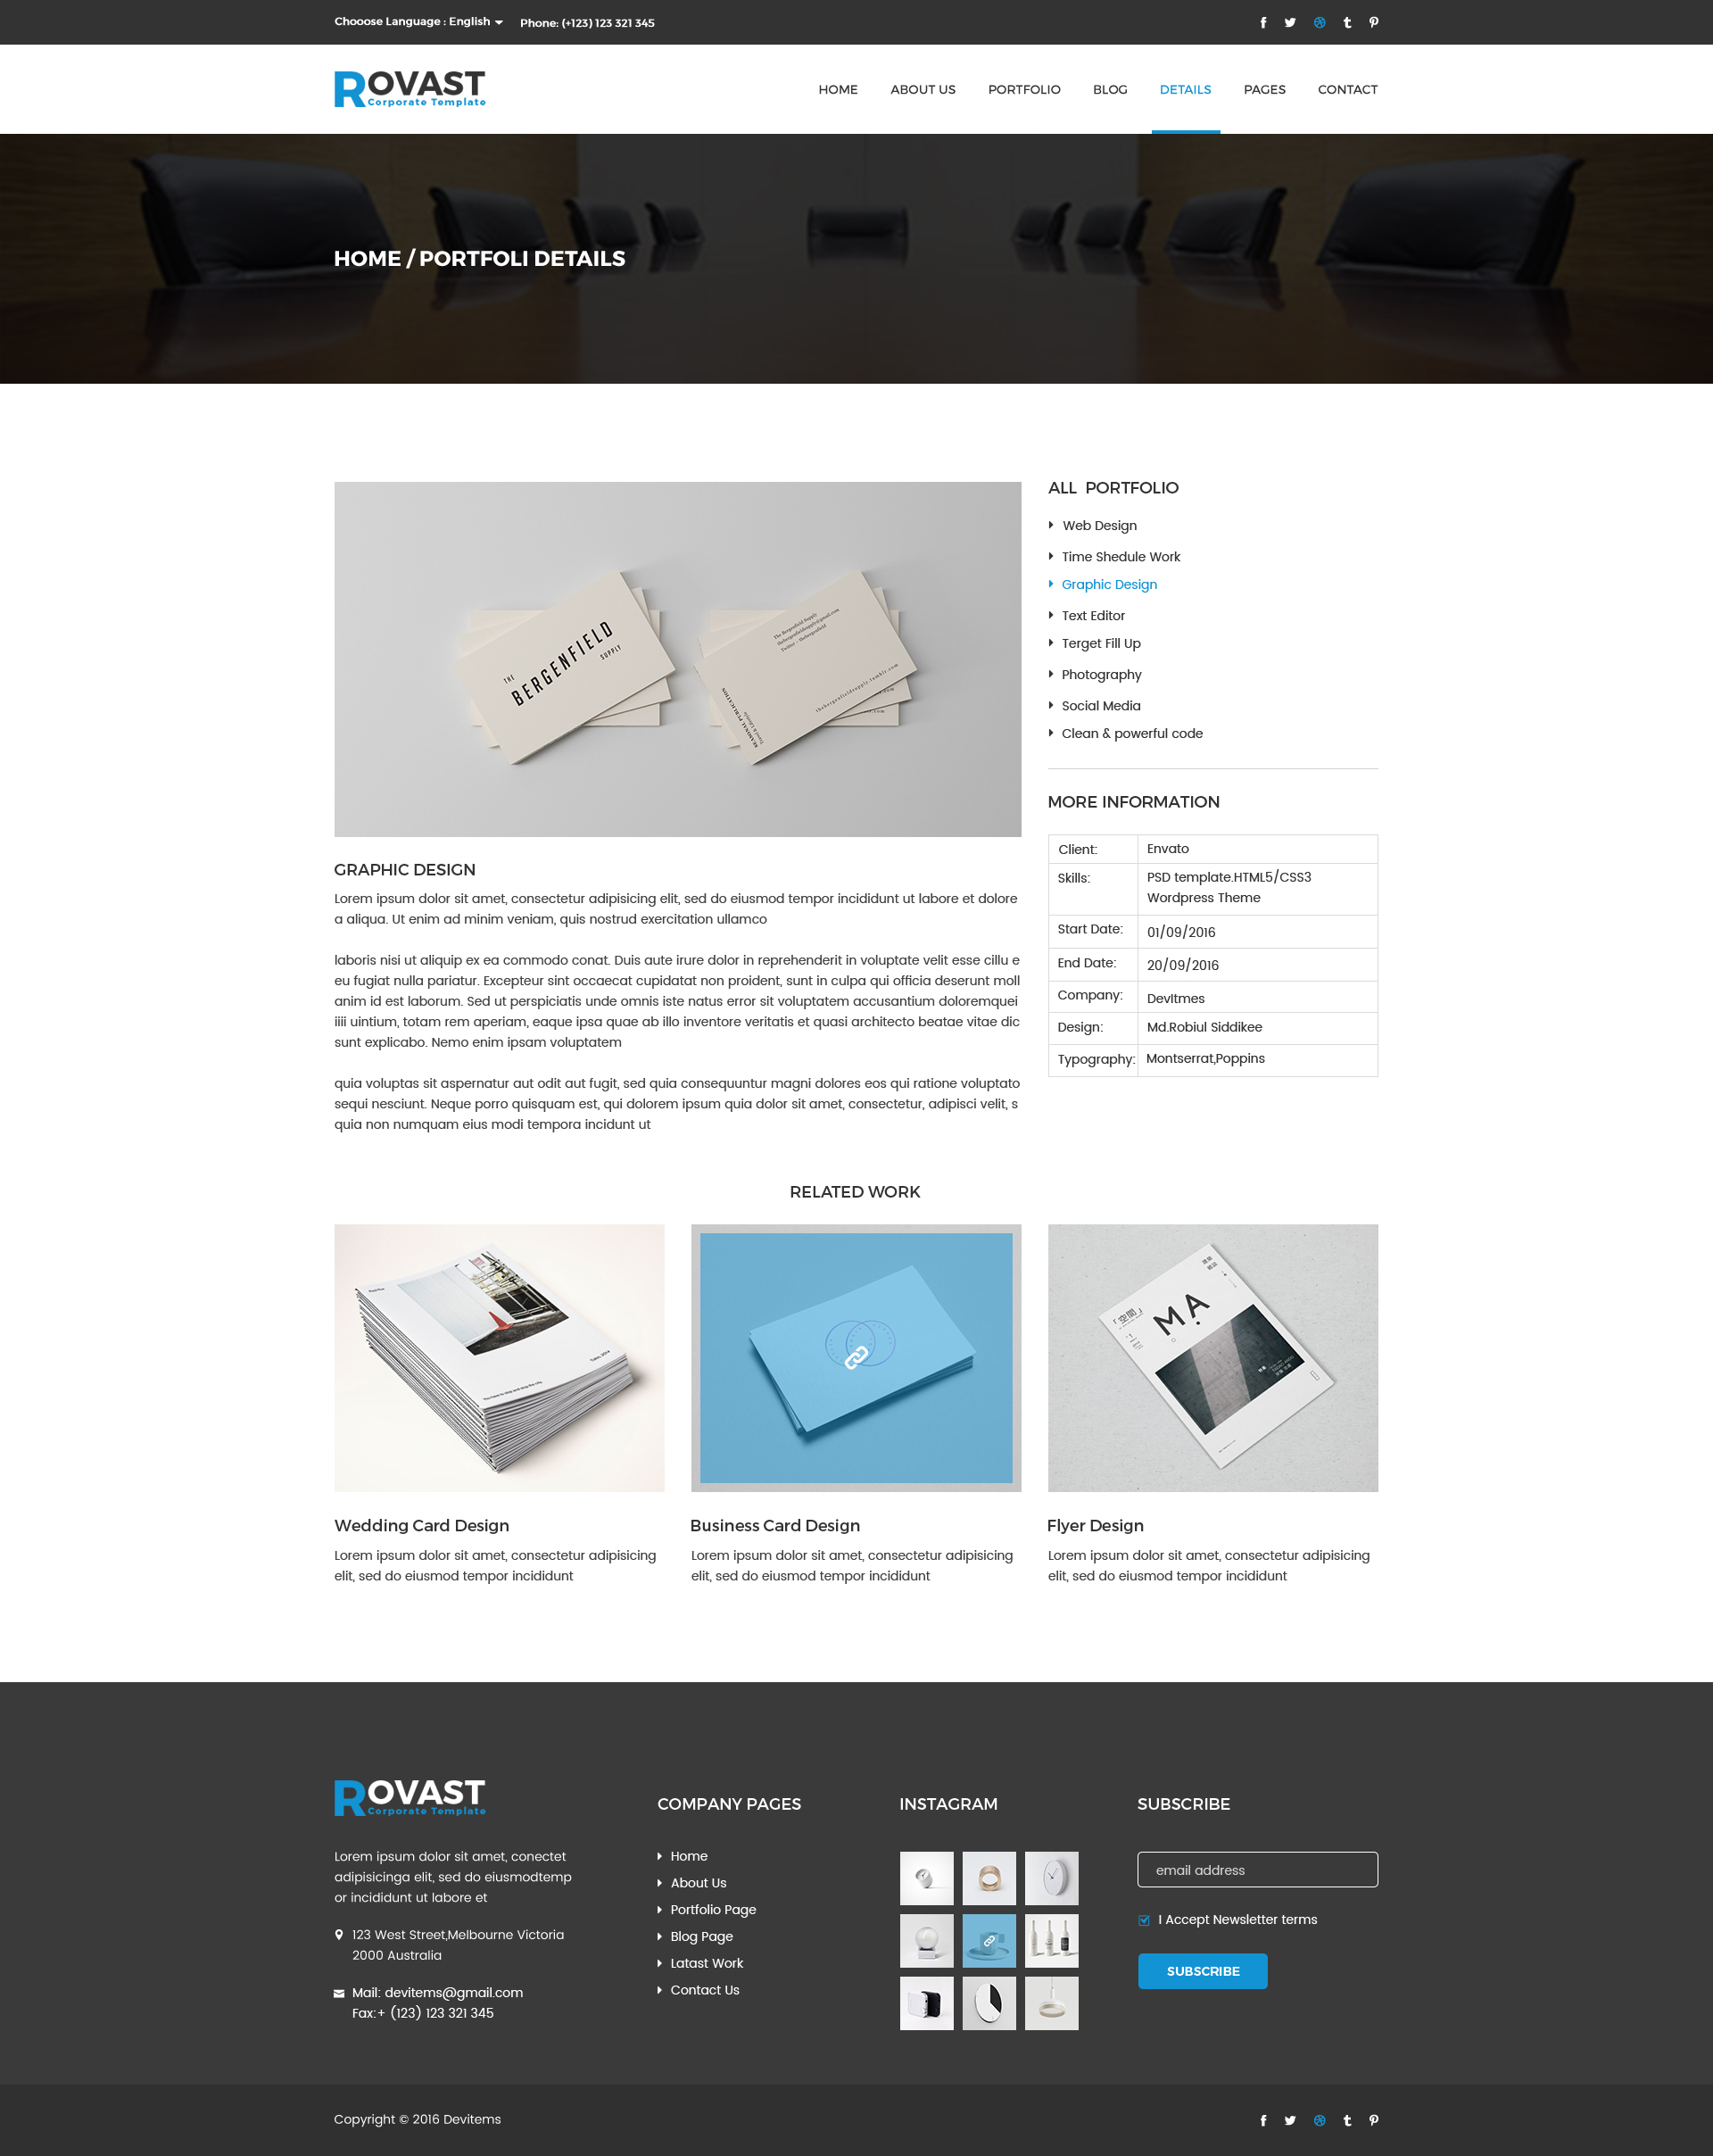 rovast corporate psd template by themes hub